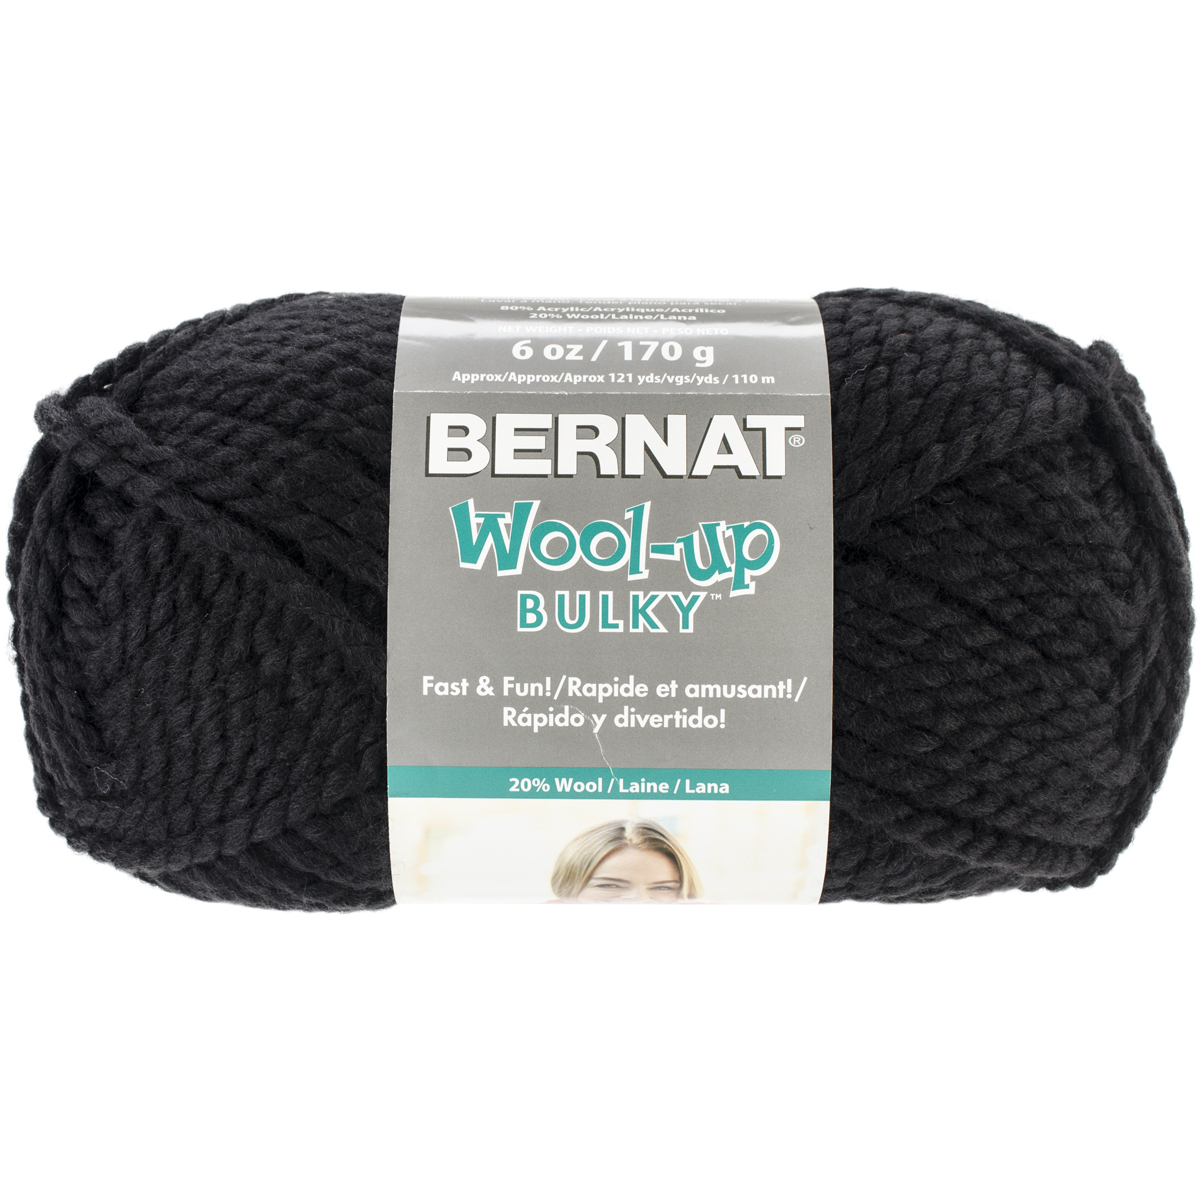 Spinrite Wool-Up Bulky Yarn, Black Multi-Colored